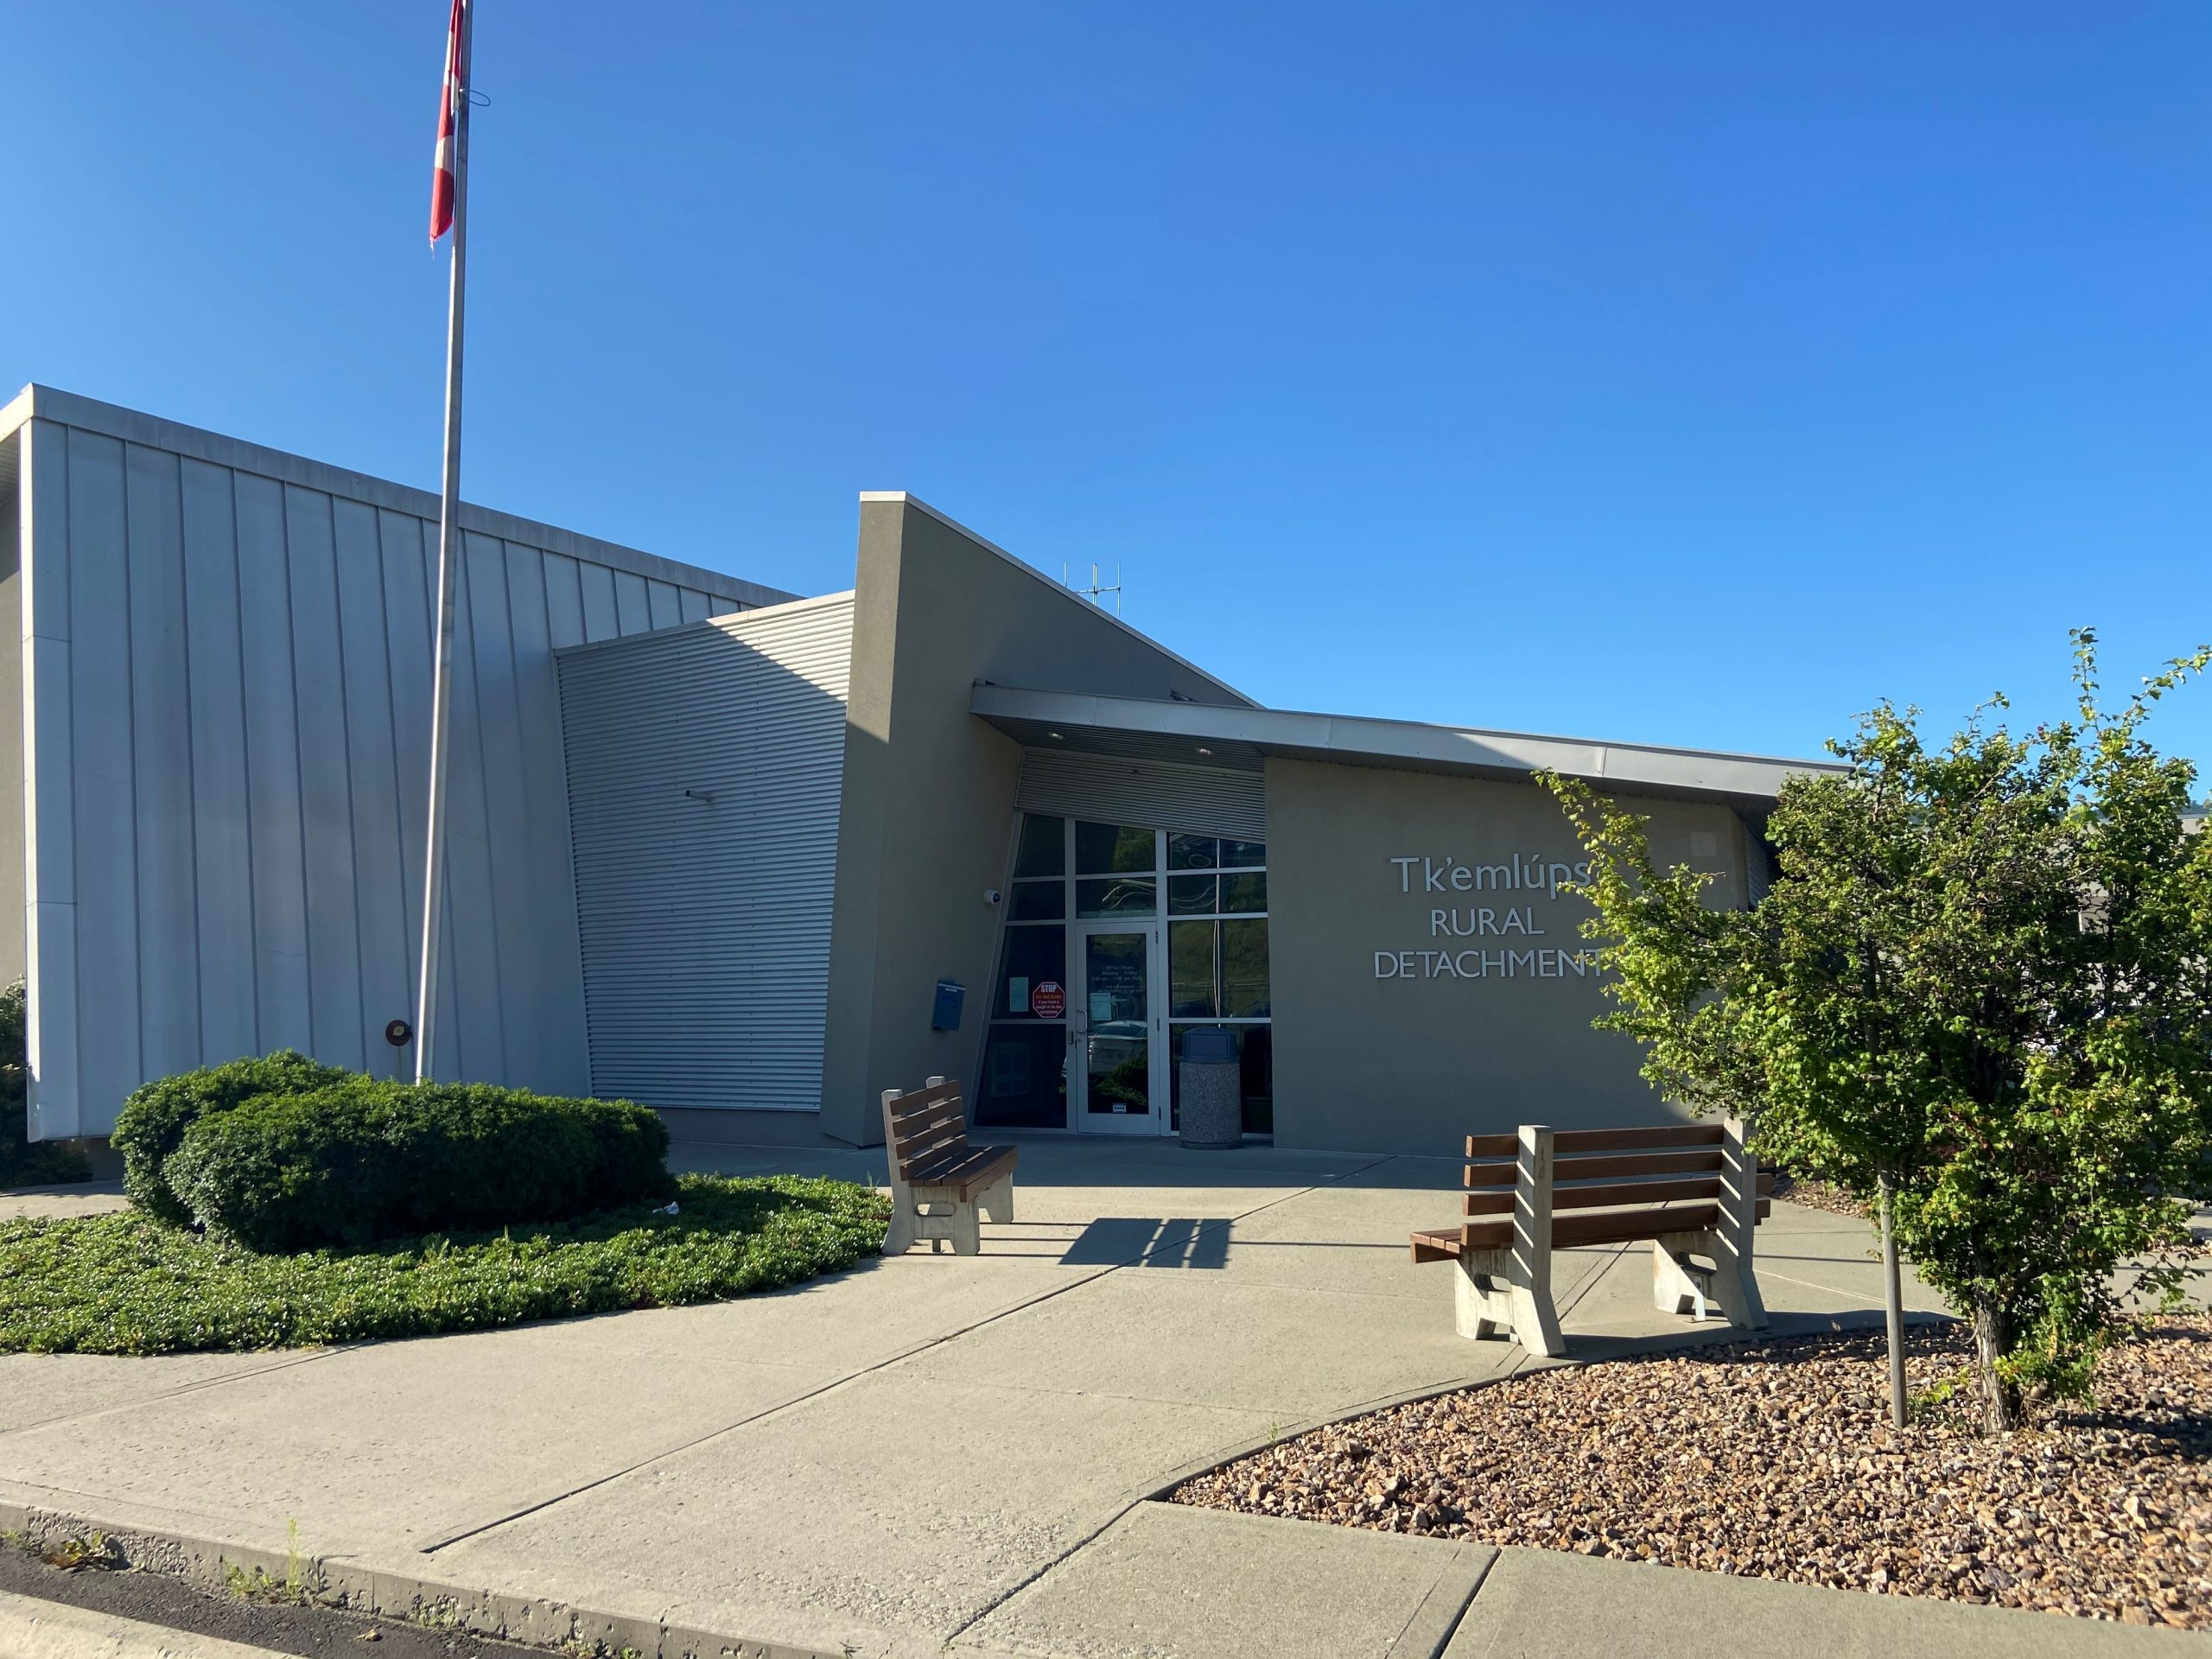 599 Powwow Trail, Kamloops, BC - Income Producing Government Tenanted Building